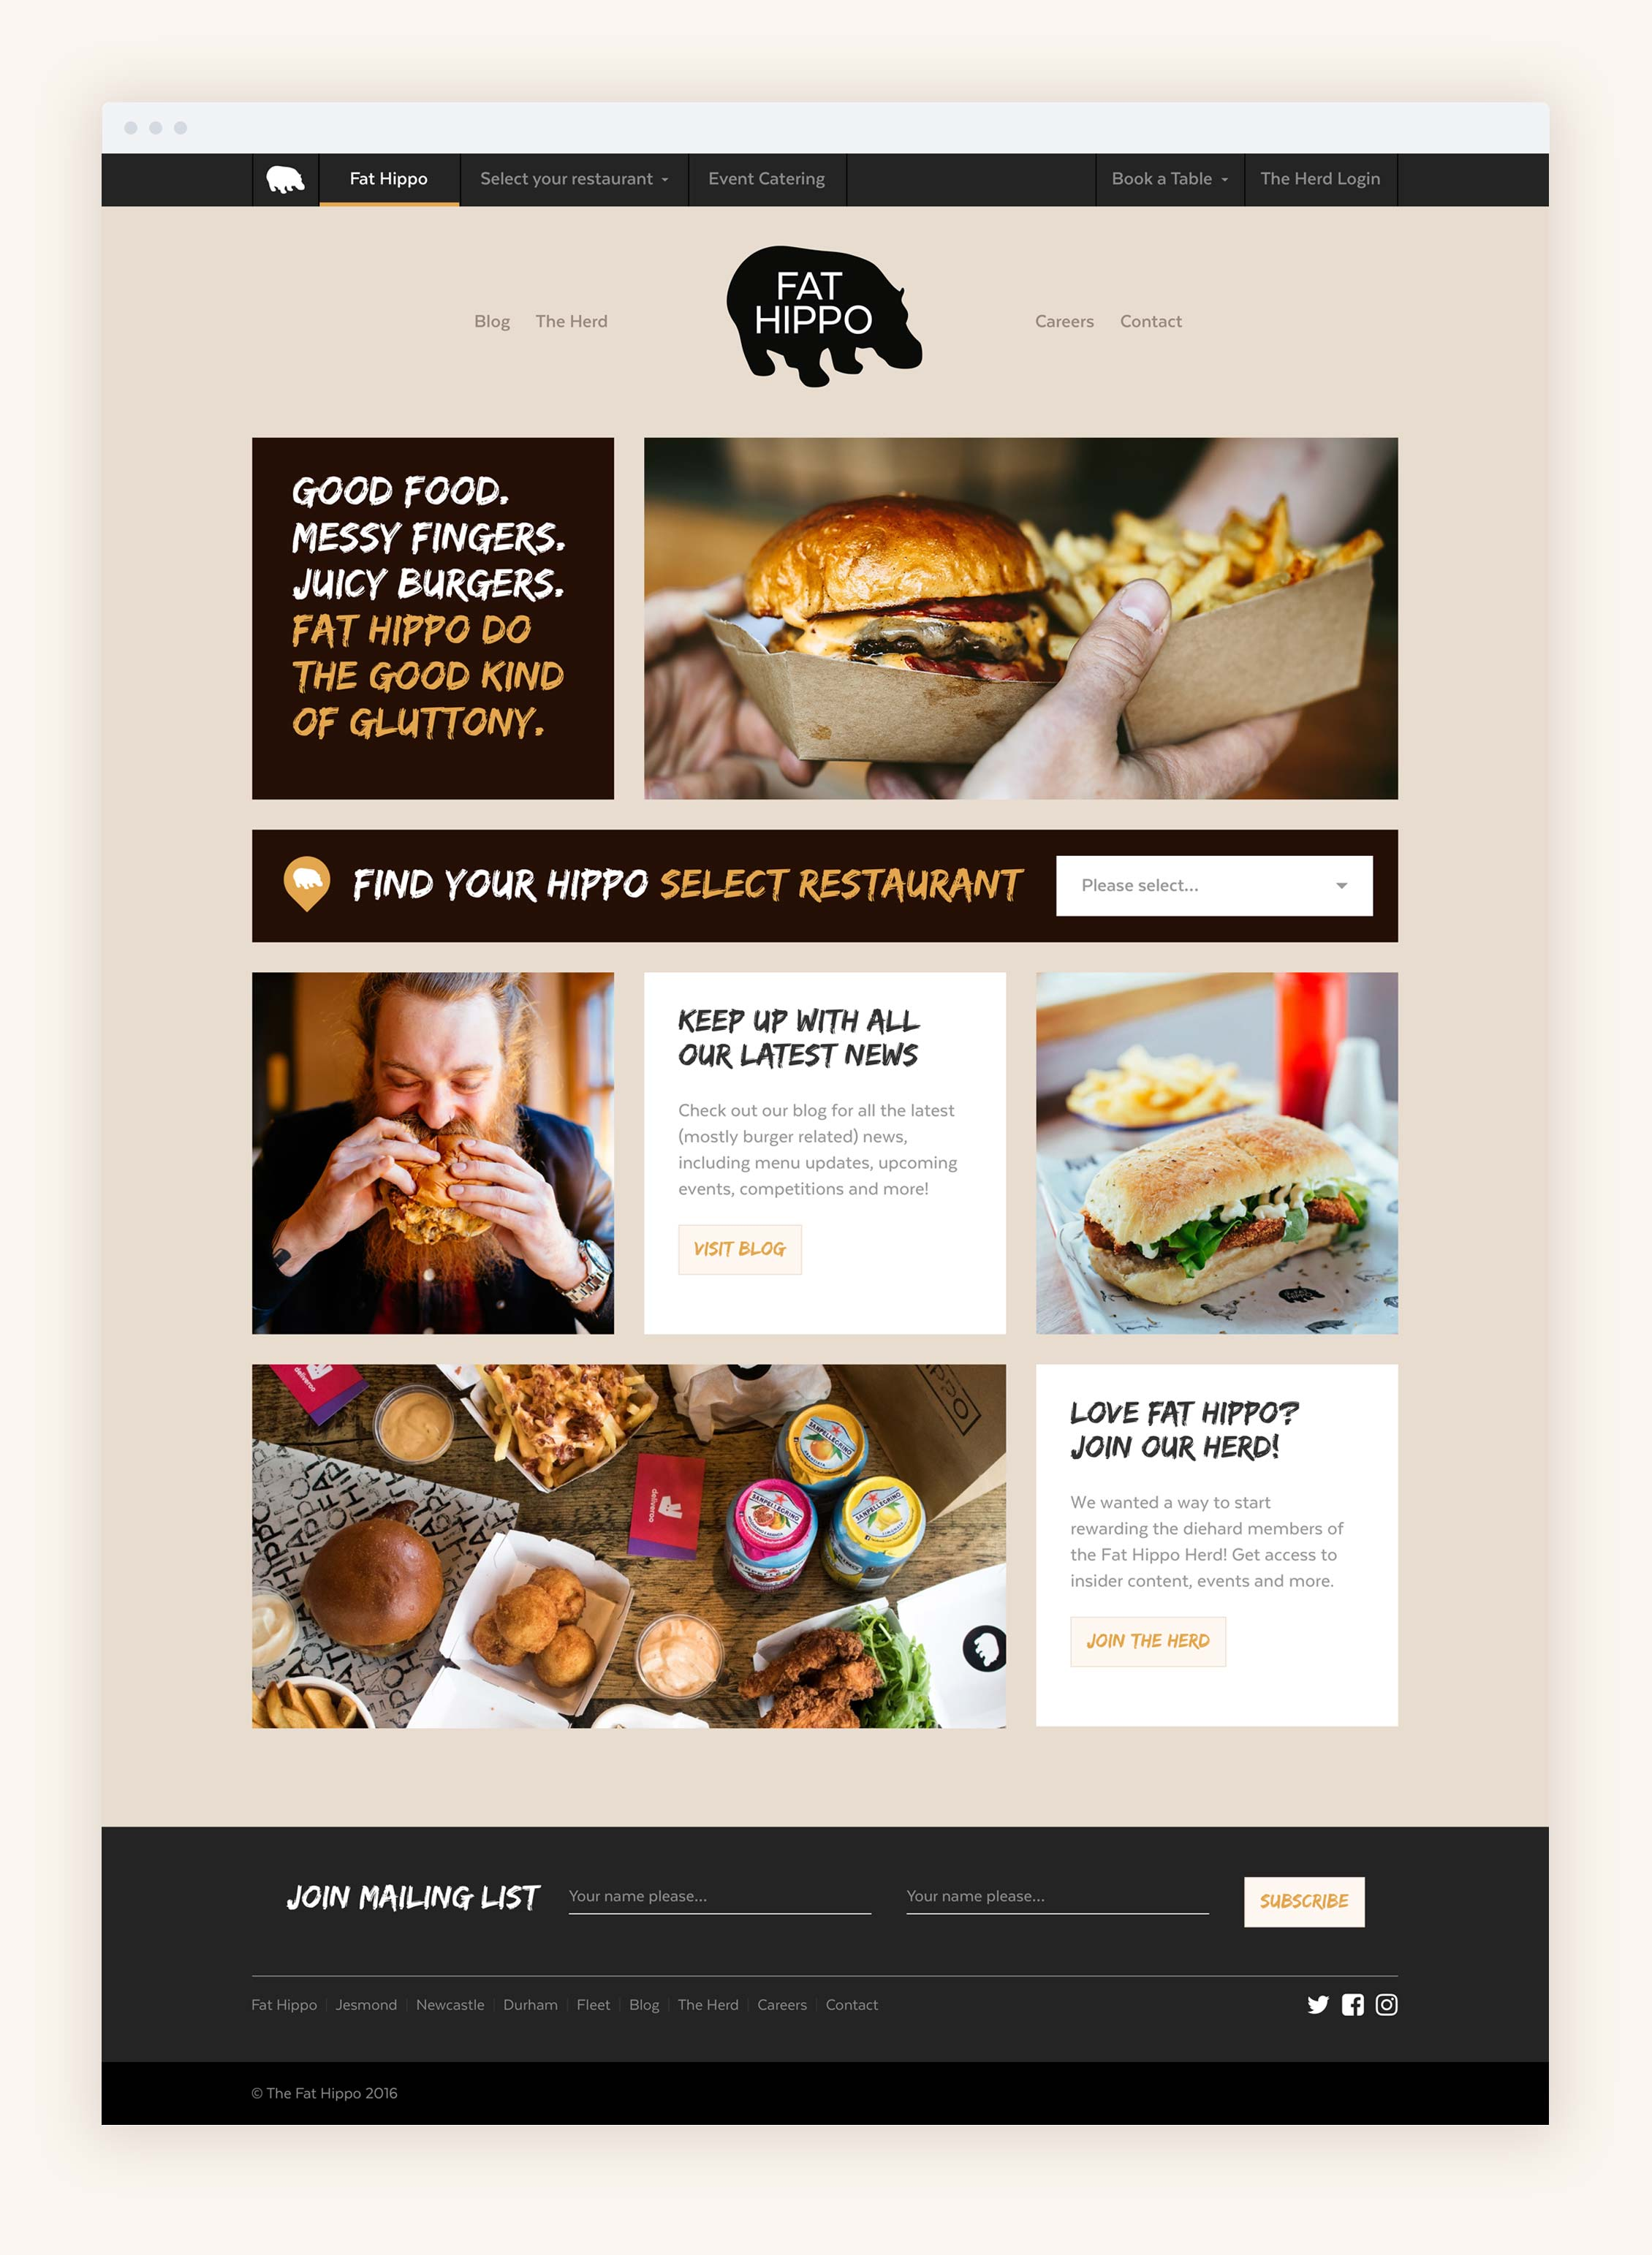 The Fat Hippo website